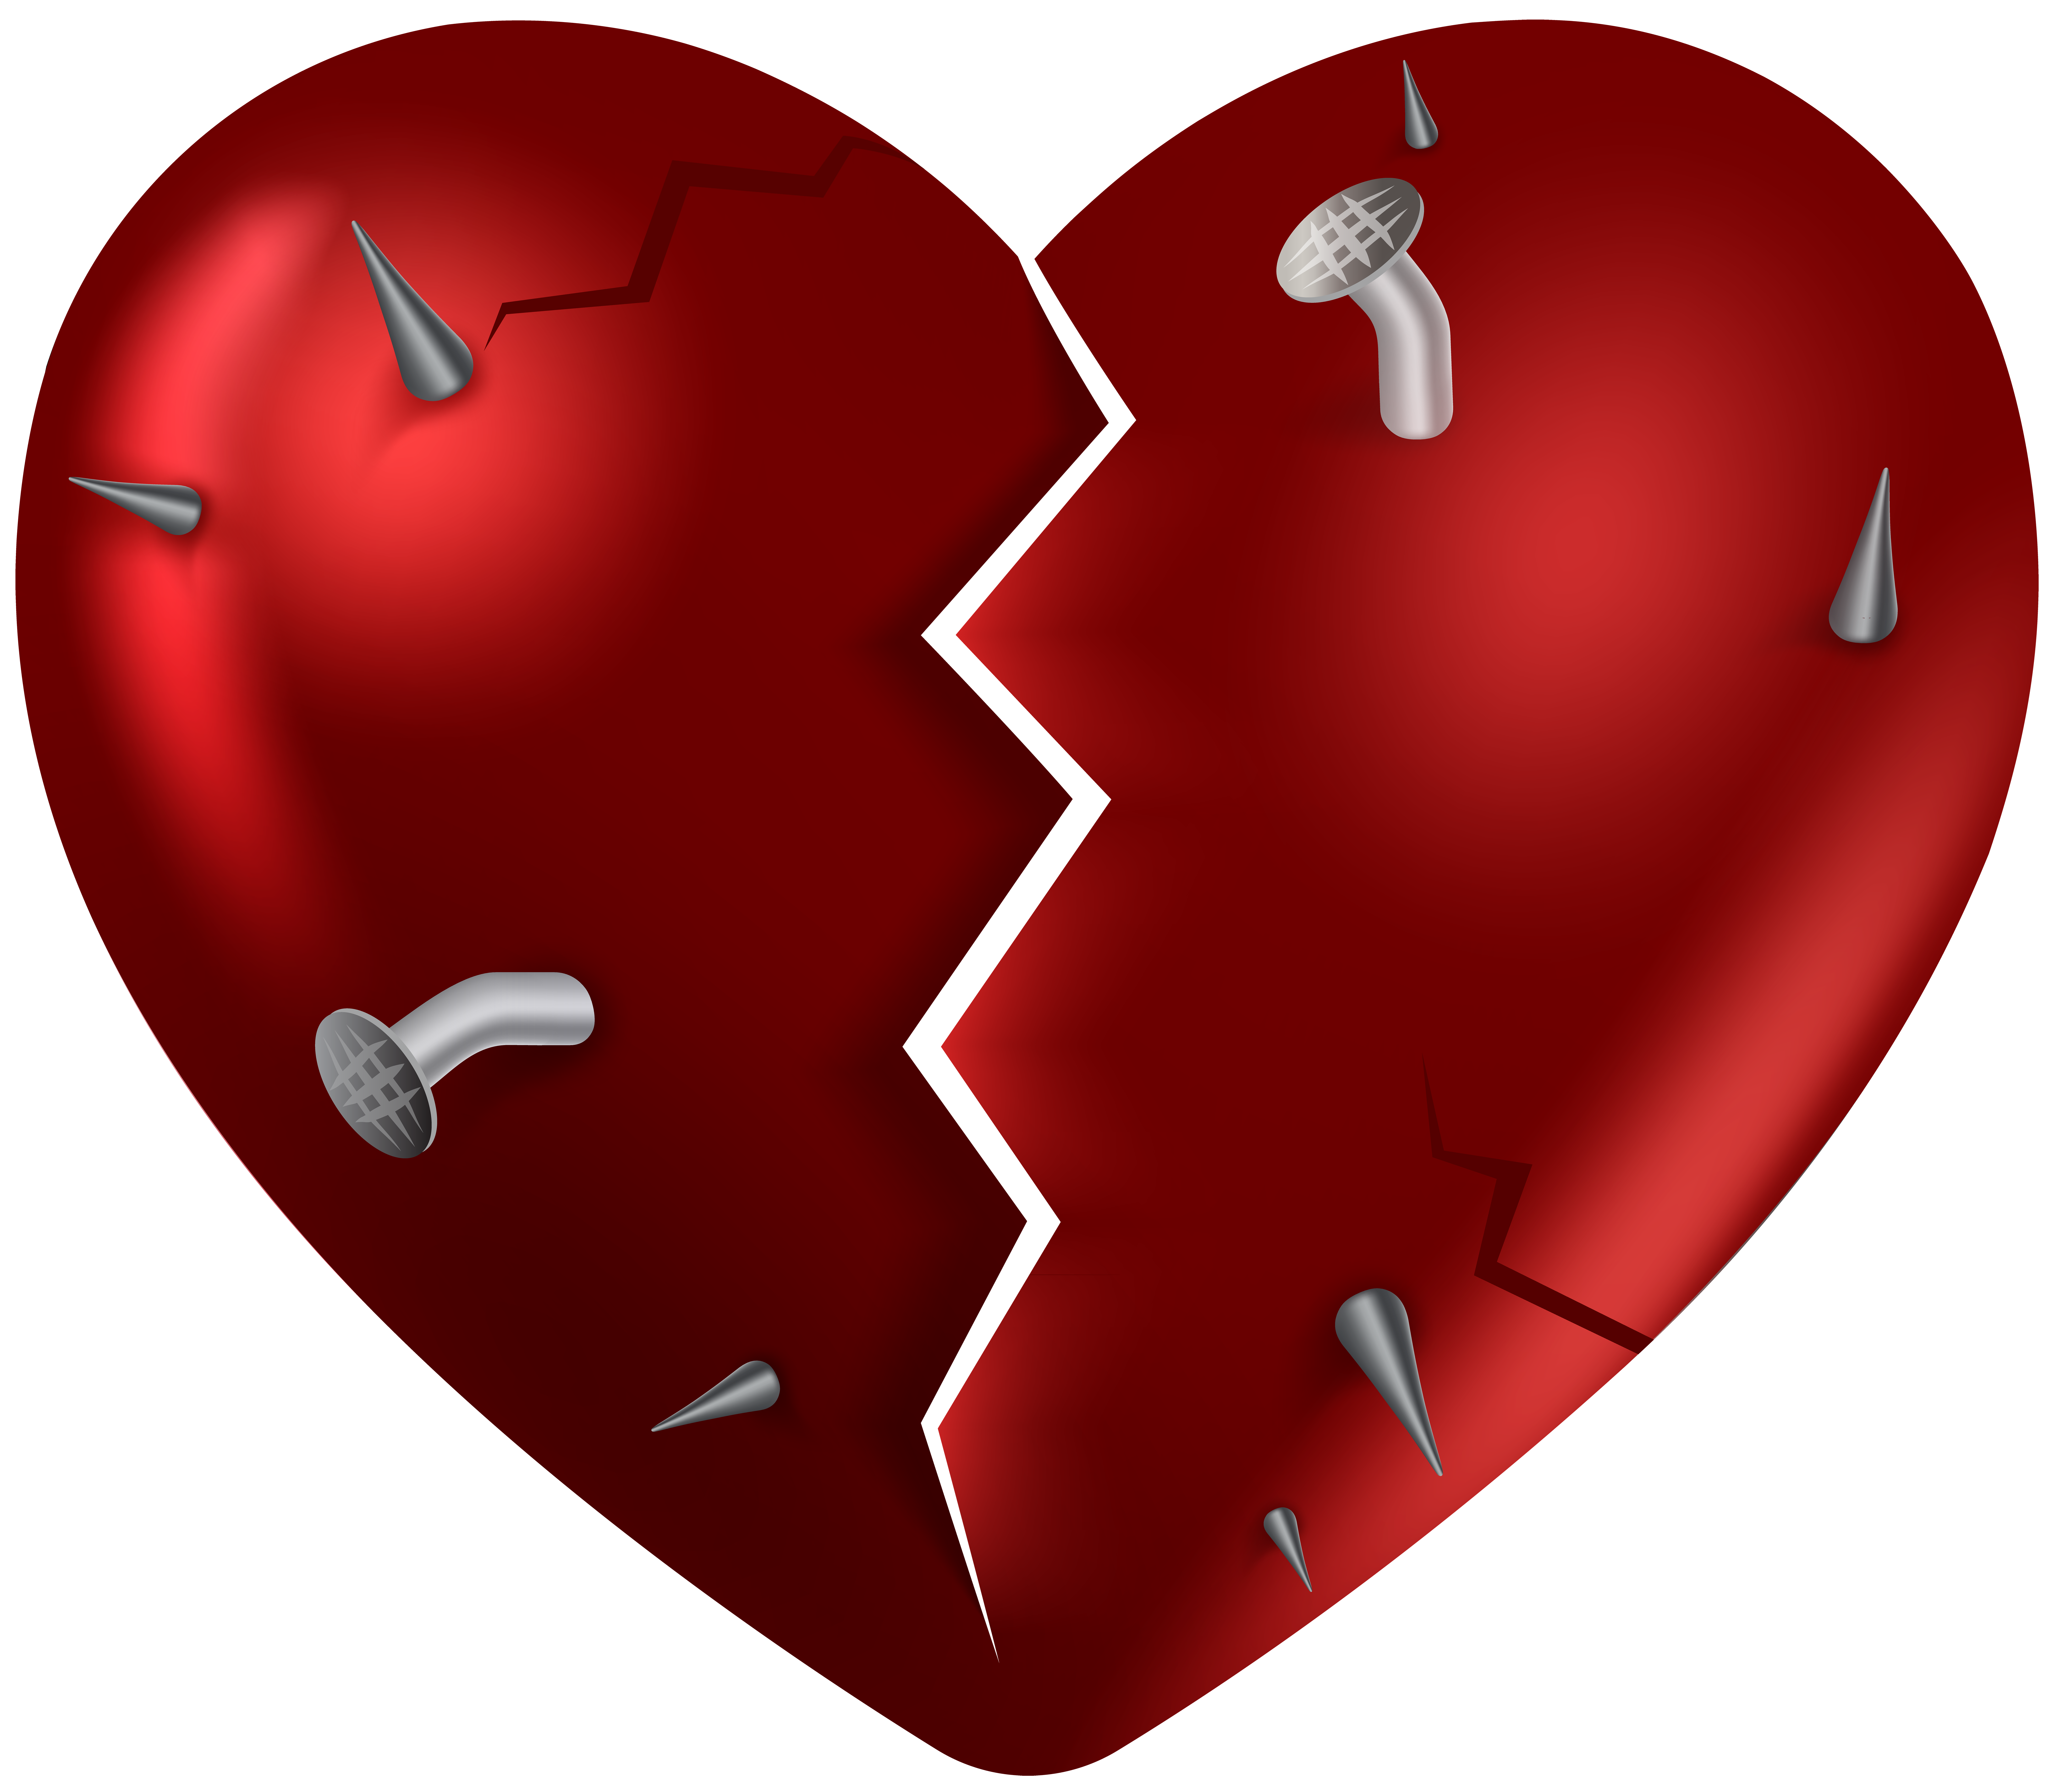 Broken Heart Free Download PNG Images